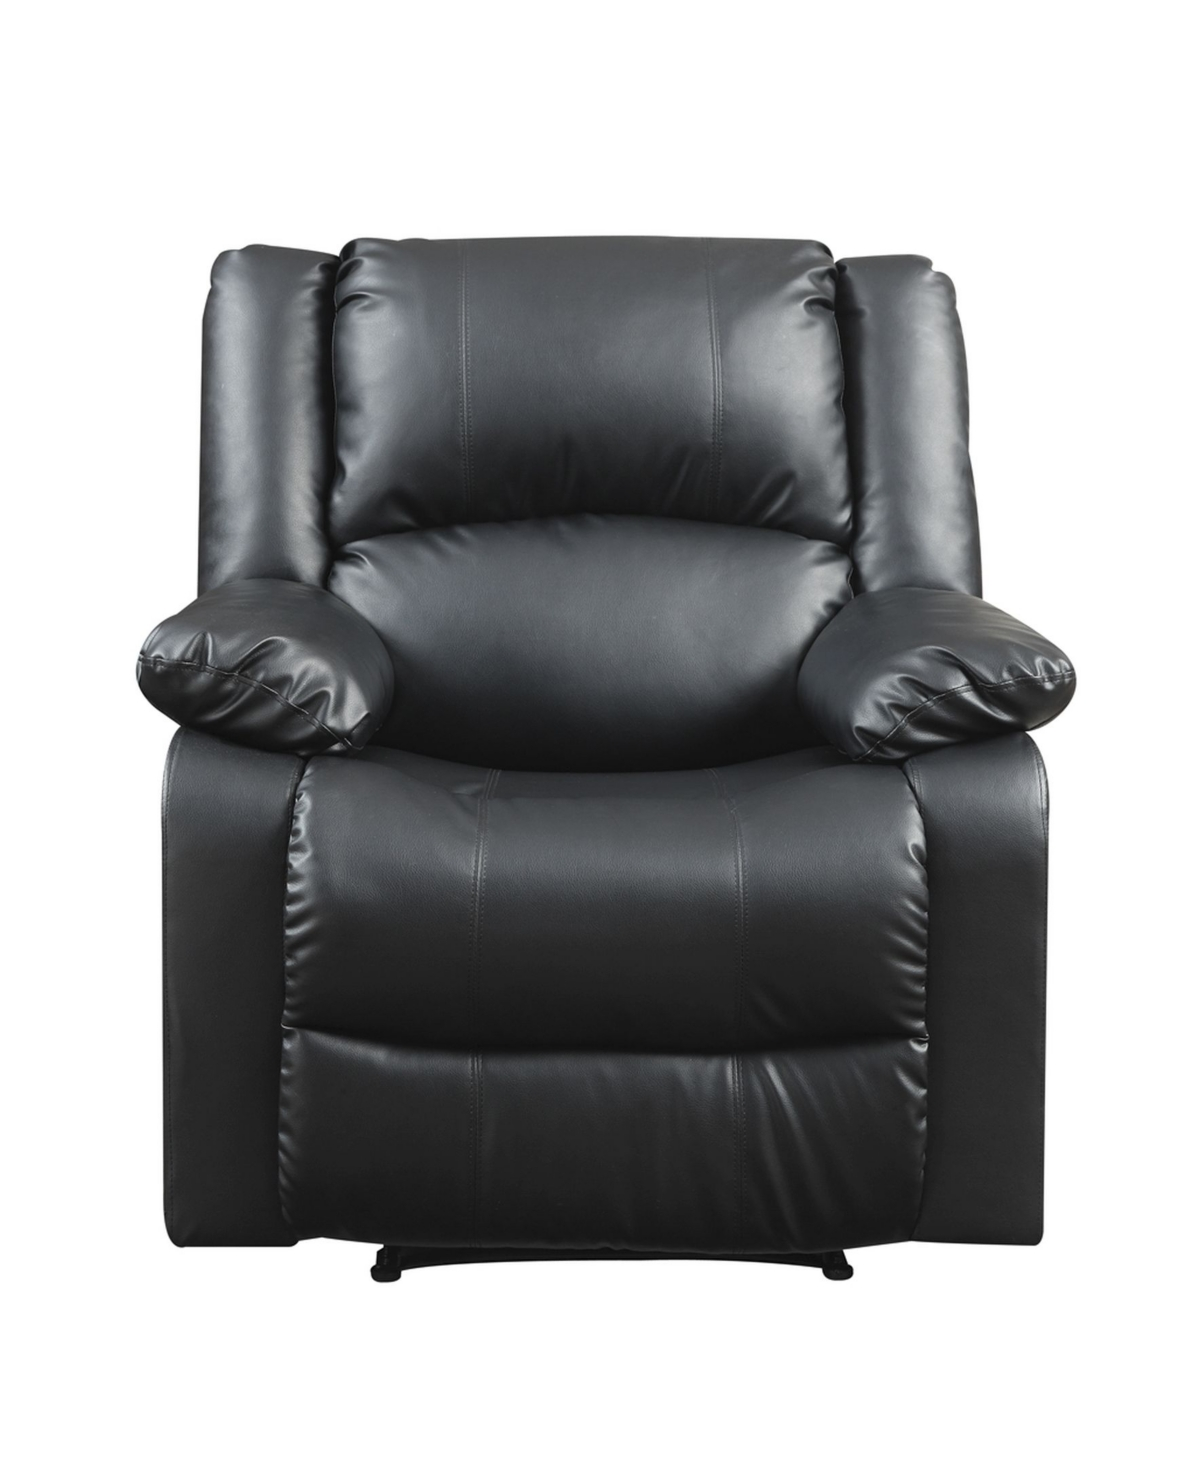 Preston 38 Inch Black Faux Leather Recliner Chair